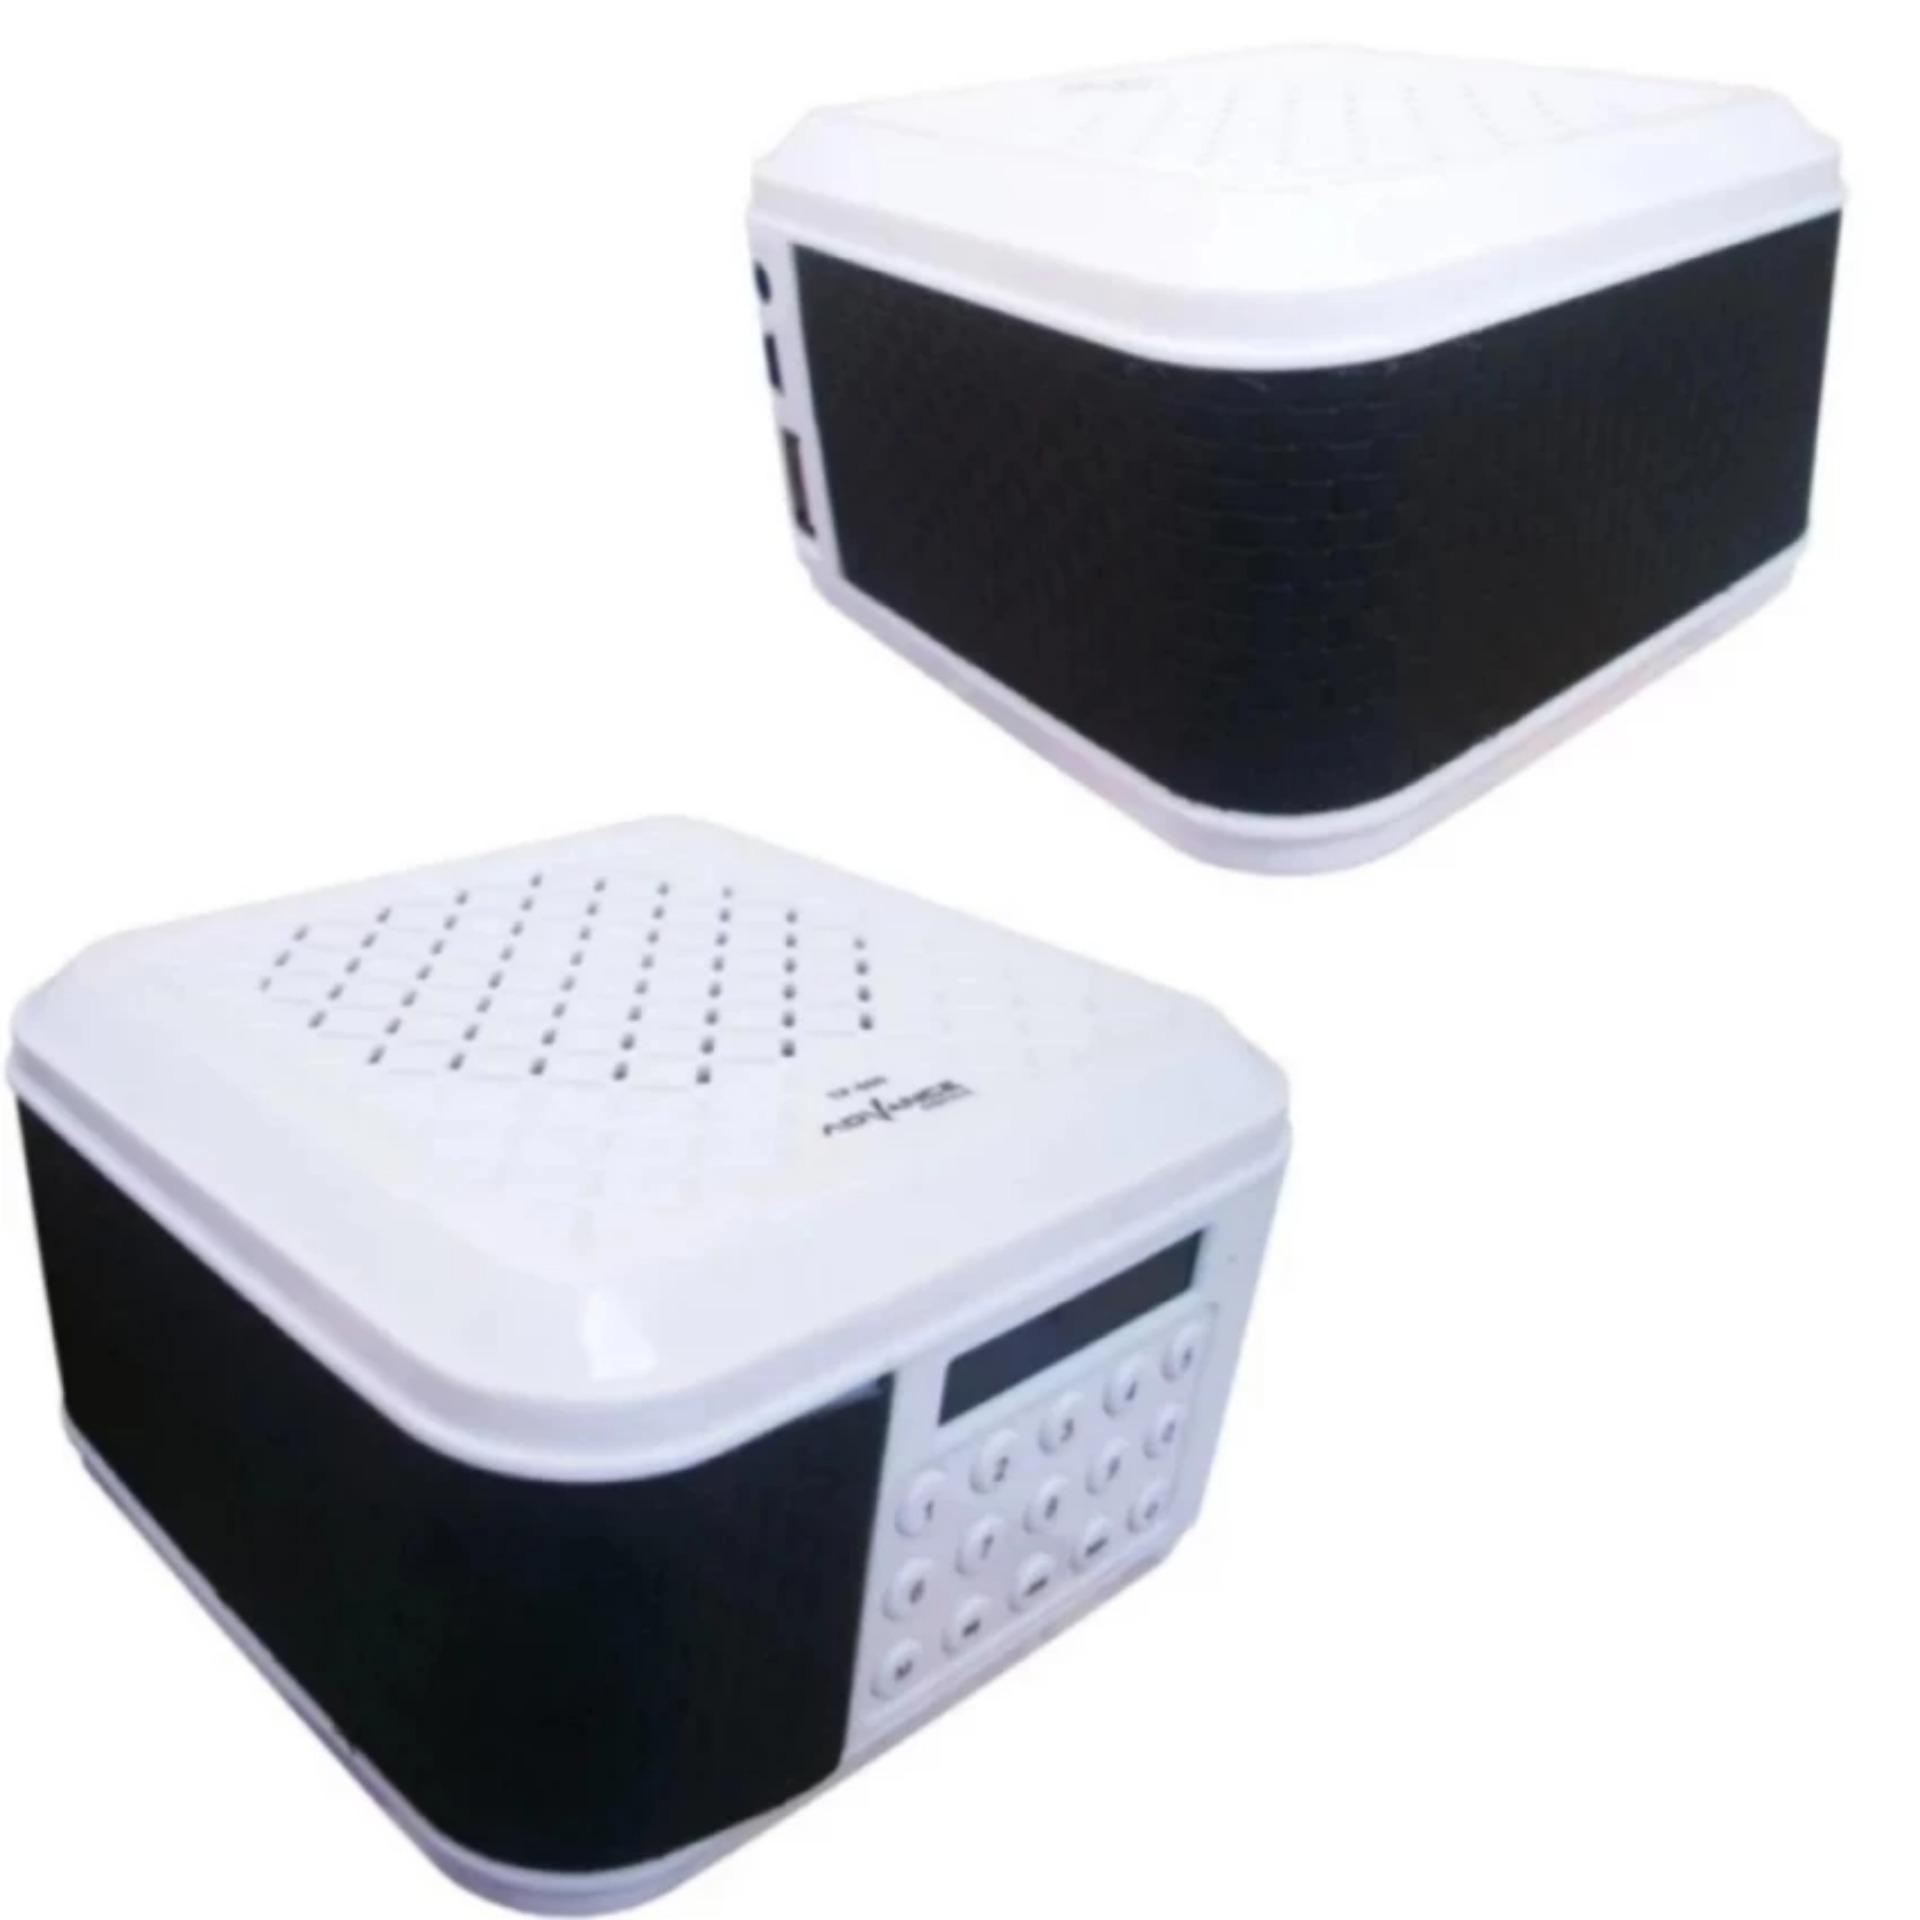 Diskon Speaker Portable Xtra Power Sound Advance Tp 600 Akhir Tahun